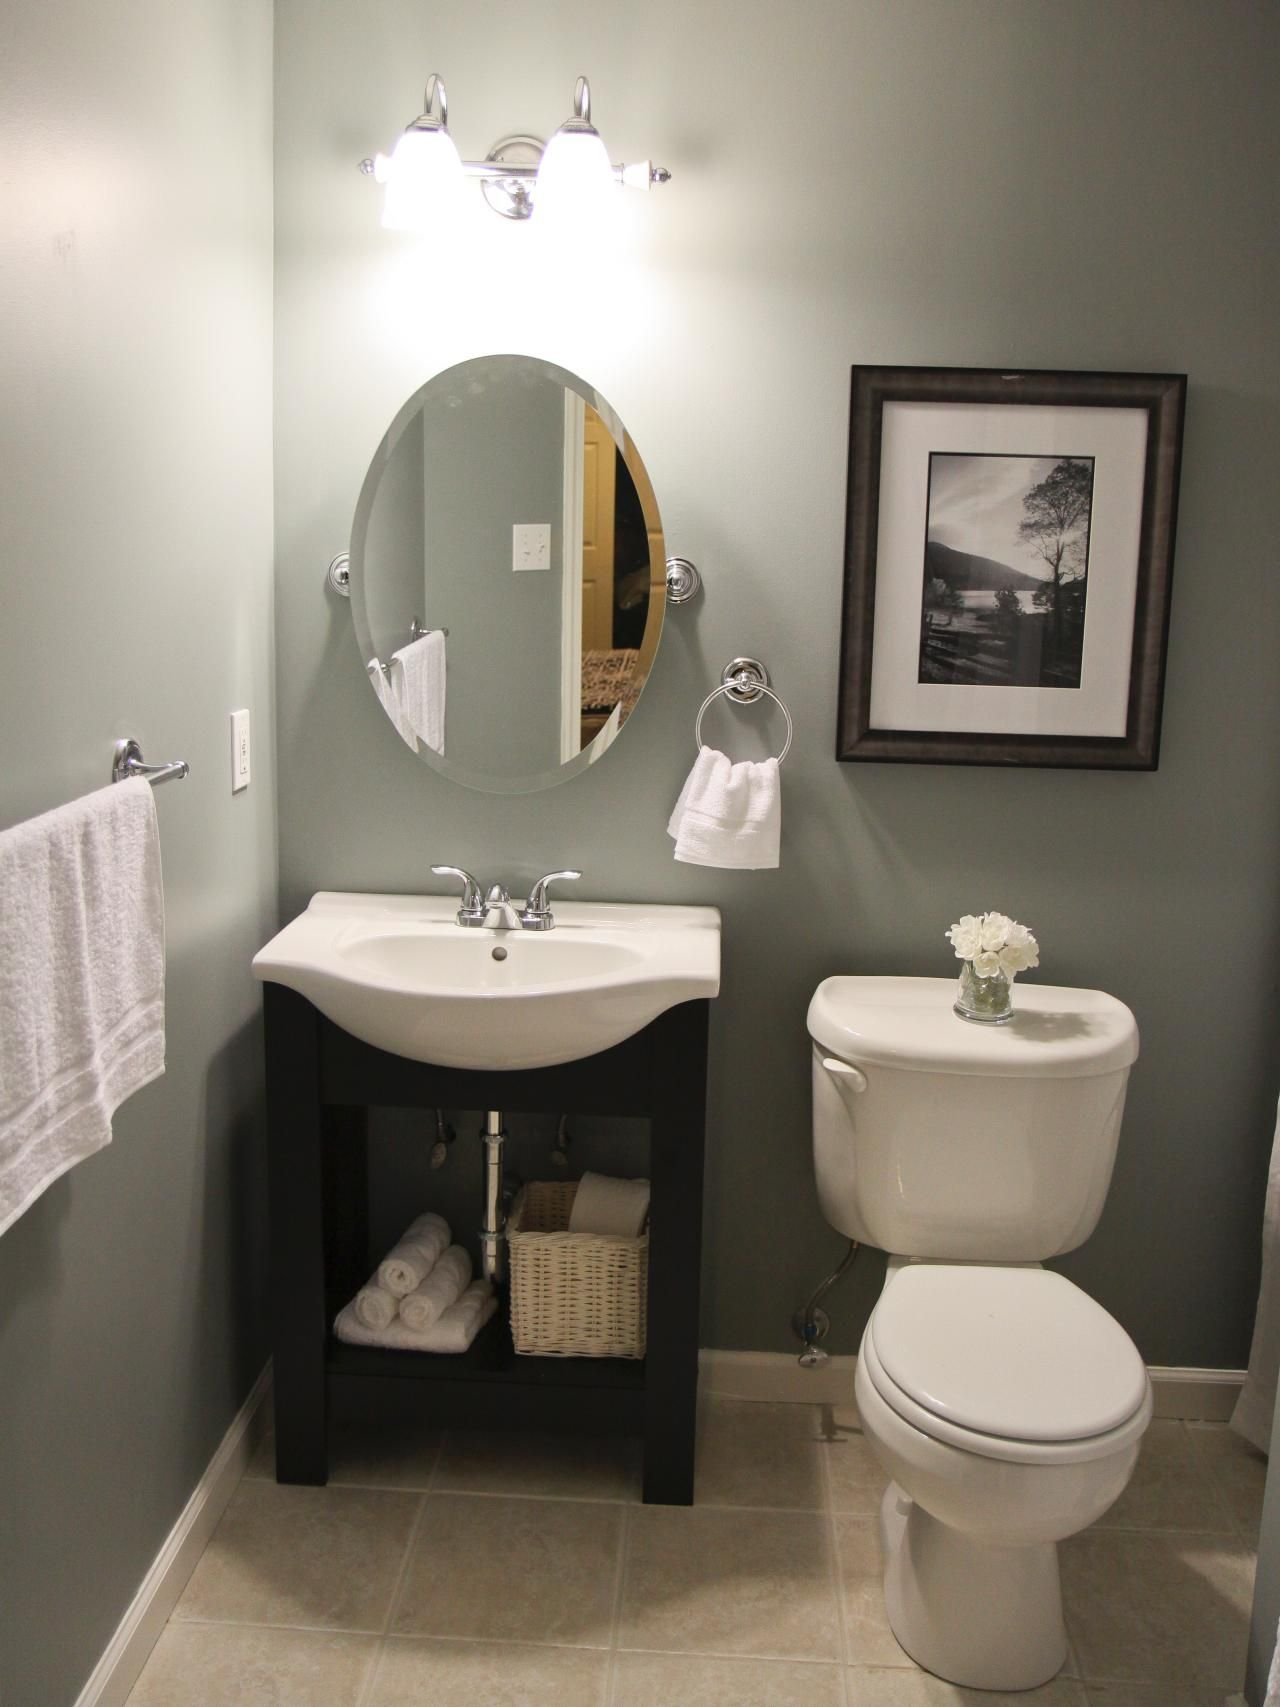 Budget Bathroom Remodels Pinterest Budget Bathroom Remodel - Bathroom remodeling on a budget designs